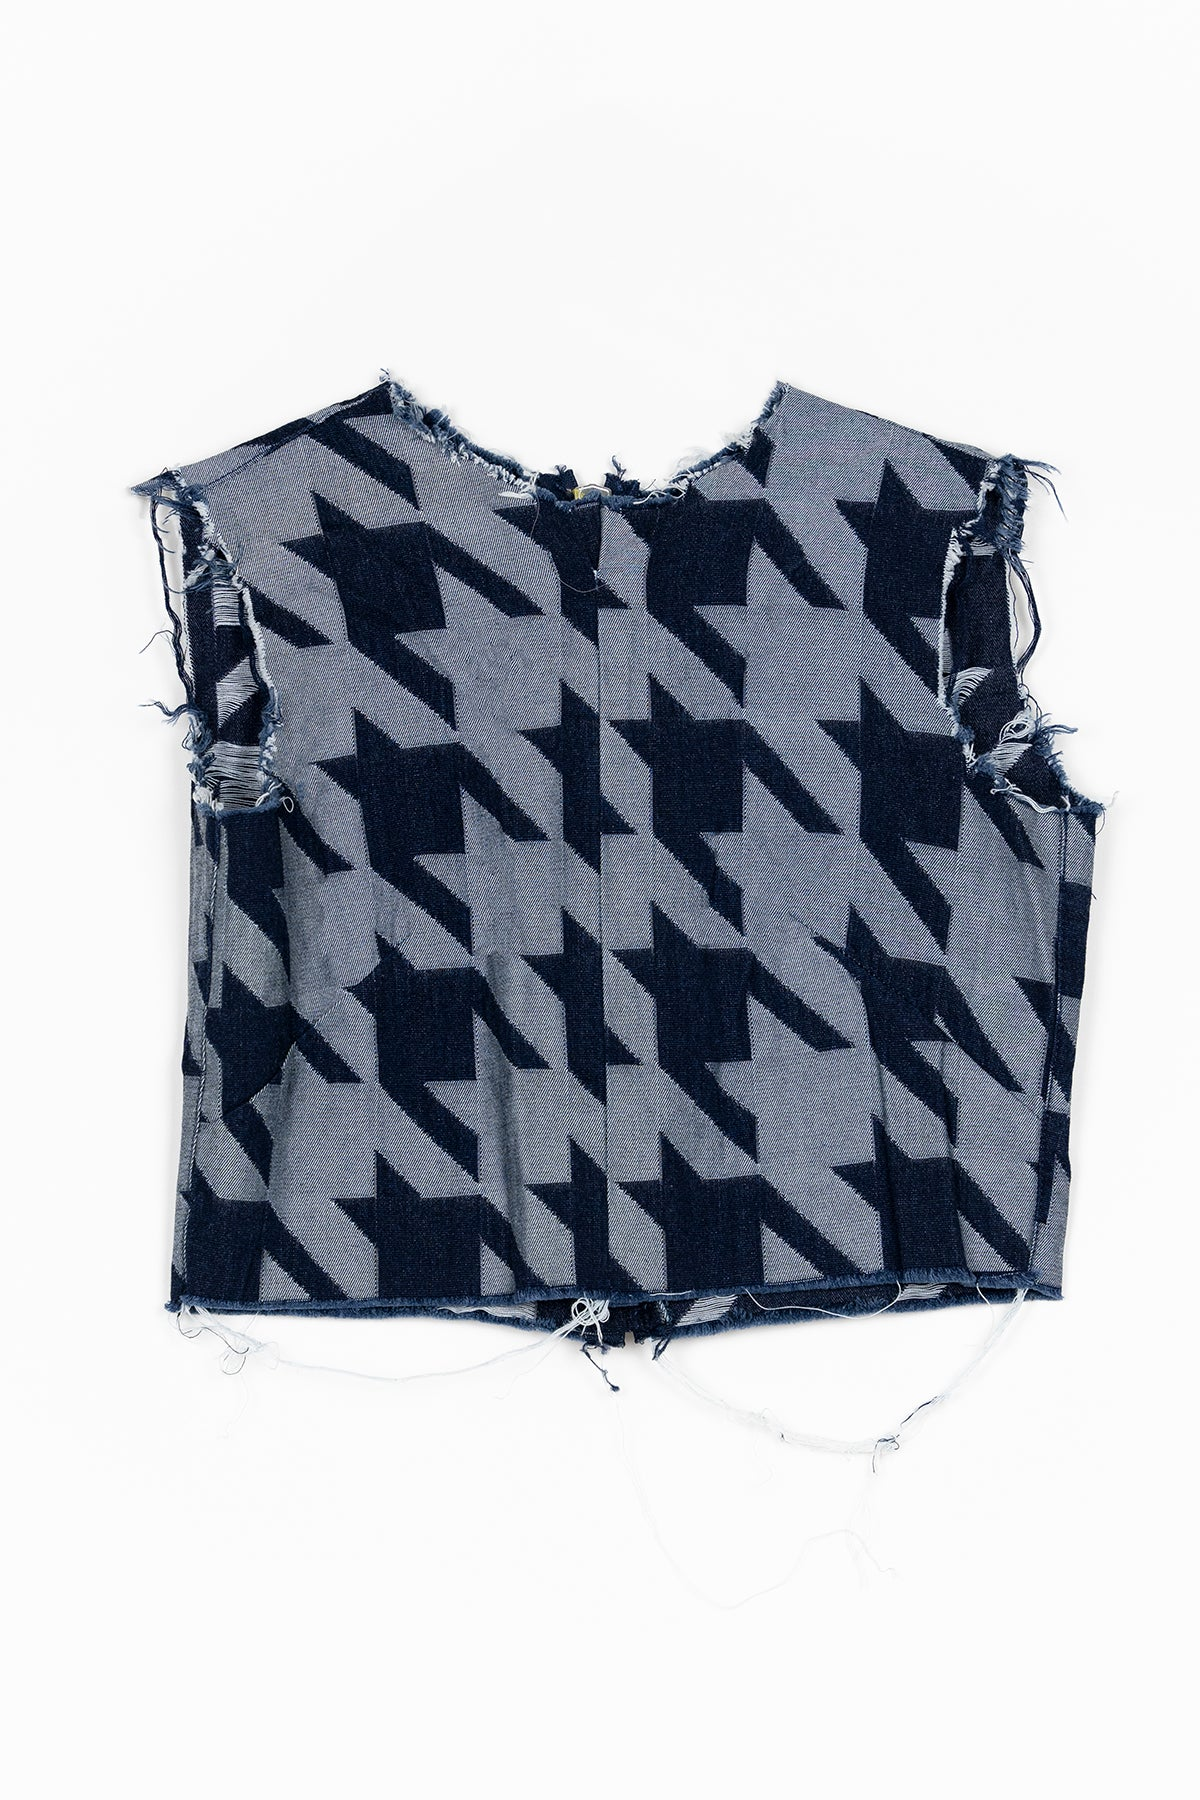 marques almeida HOUNDSTOOTH DENIM OPEN BACK TOP